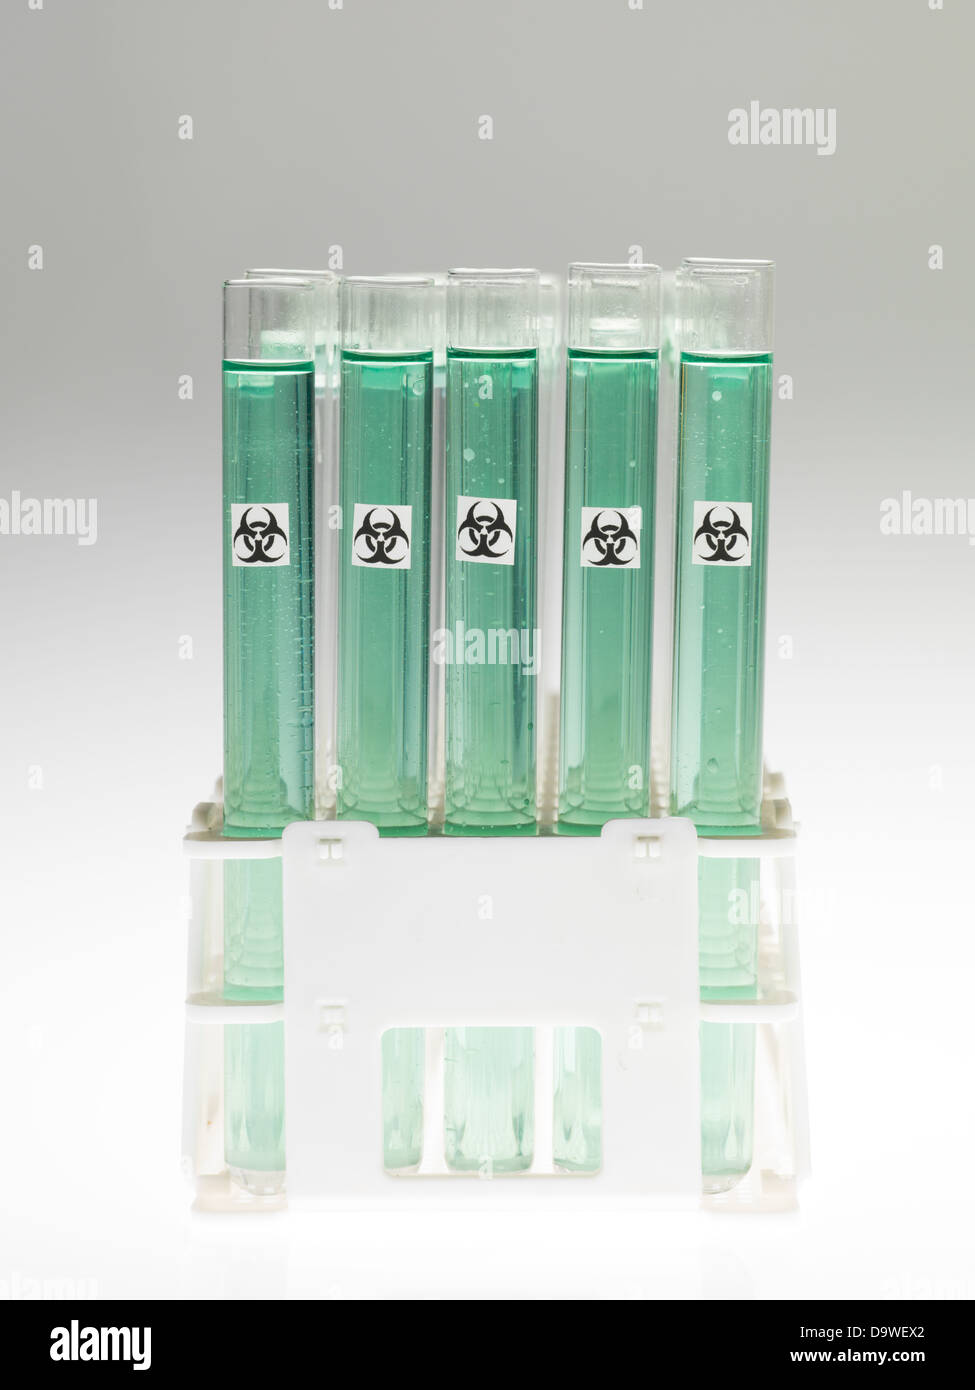 front view of experimental test tubes filled with transparent green substance and marked as bio hazardous, against Stock Photo